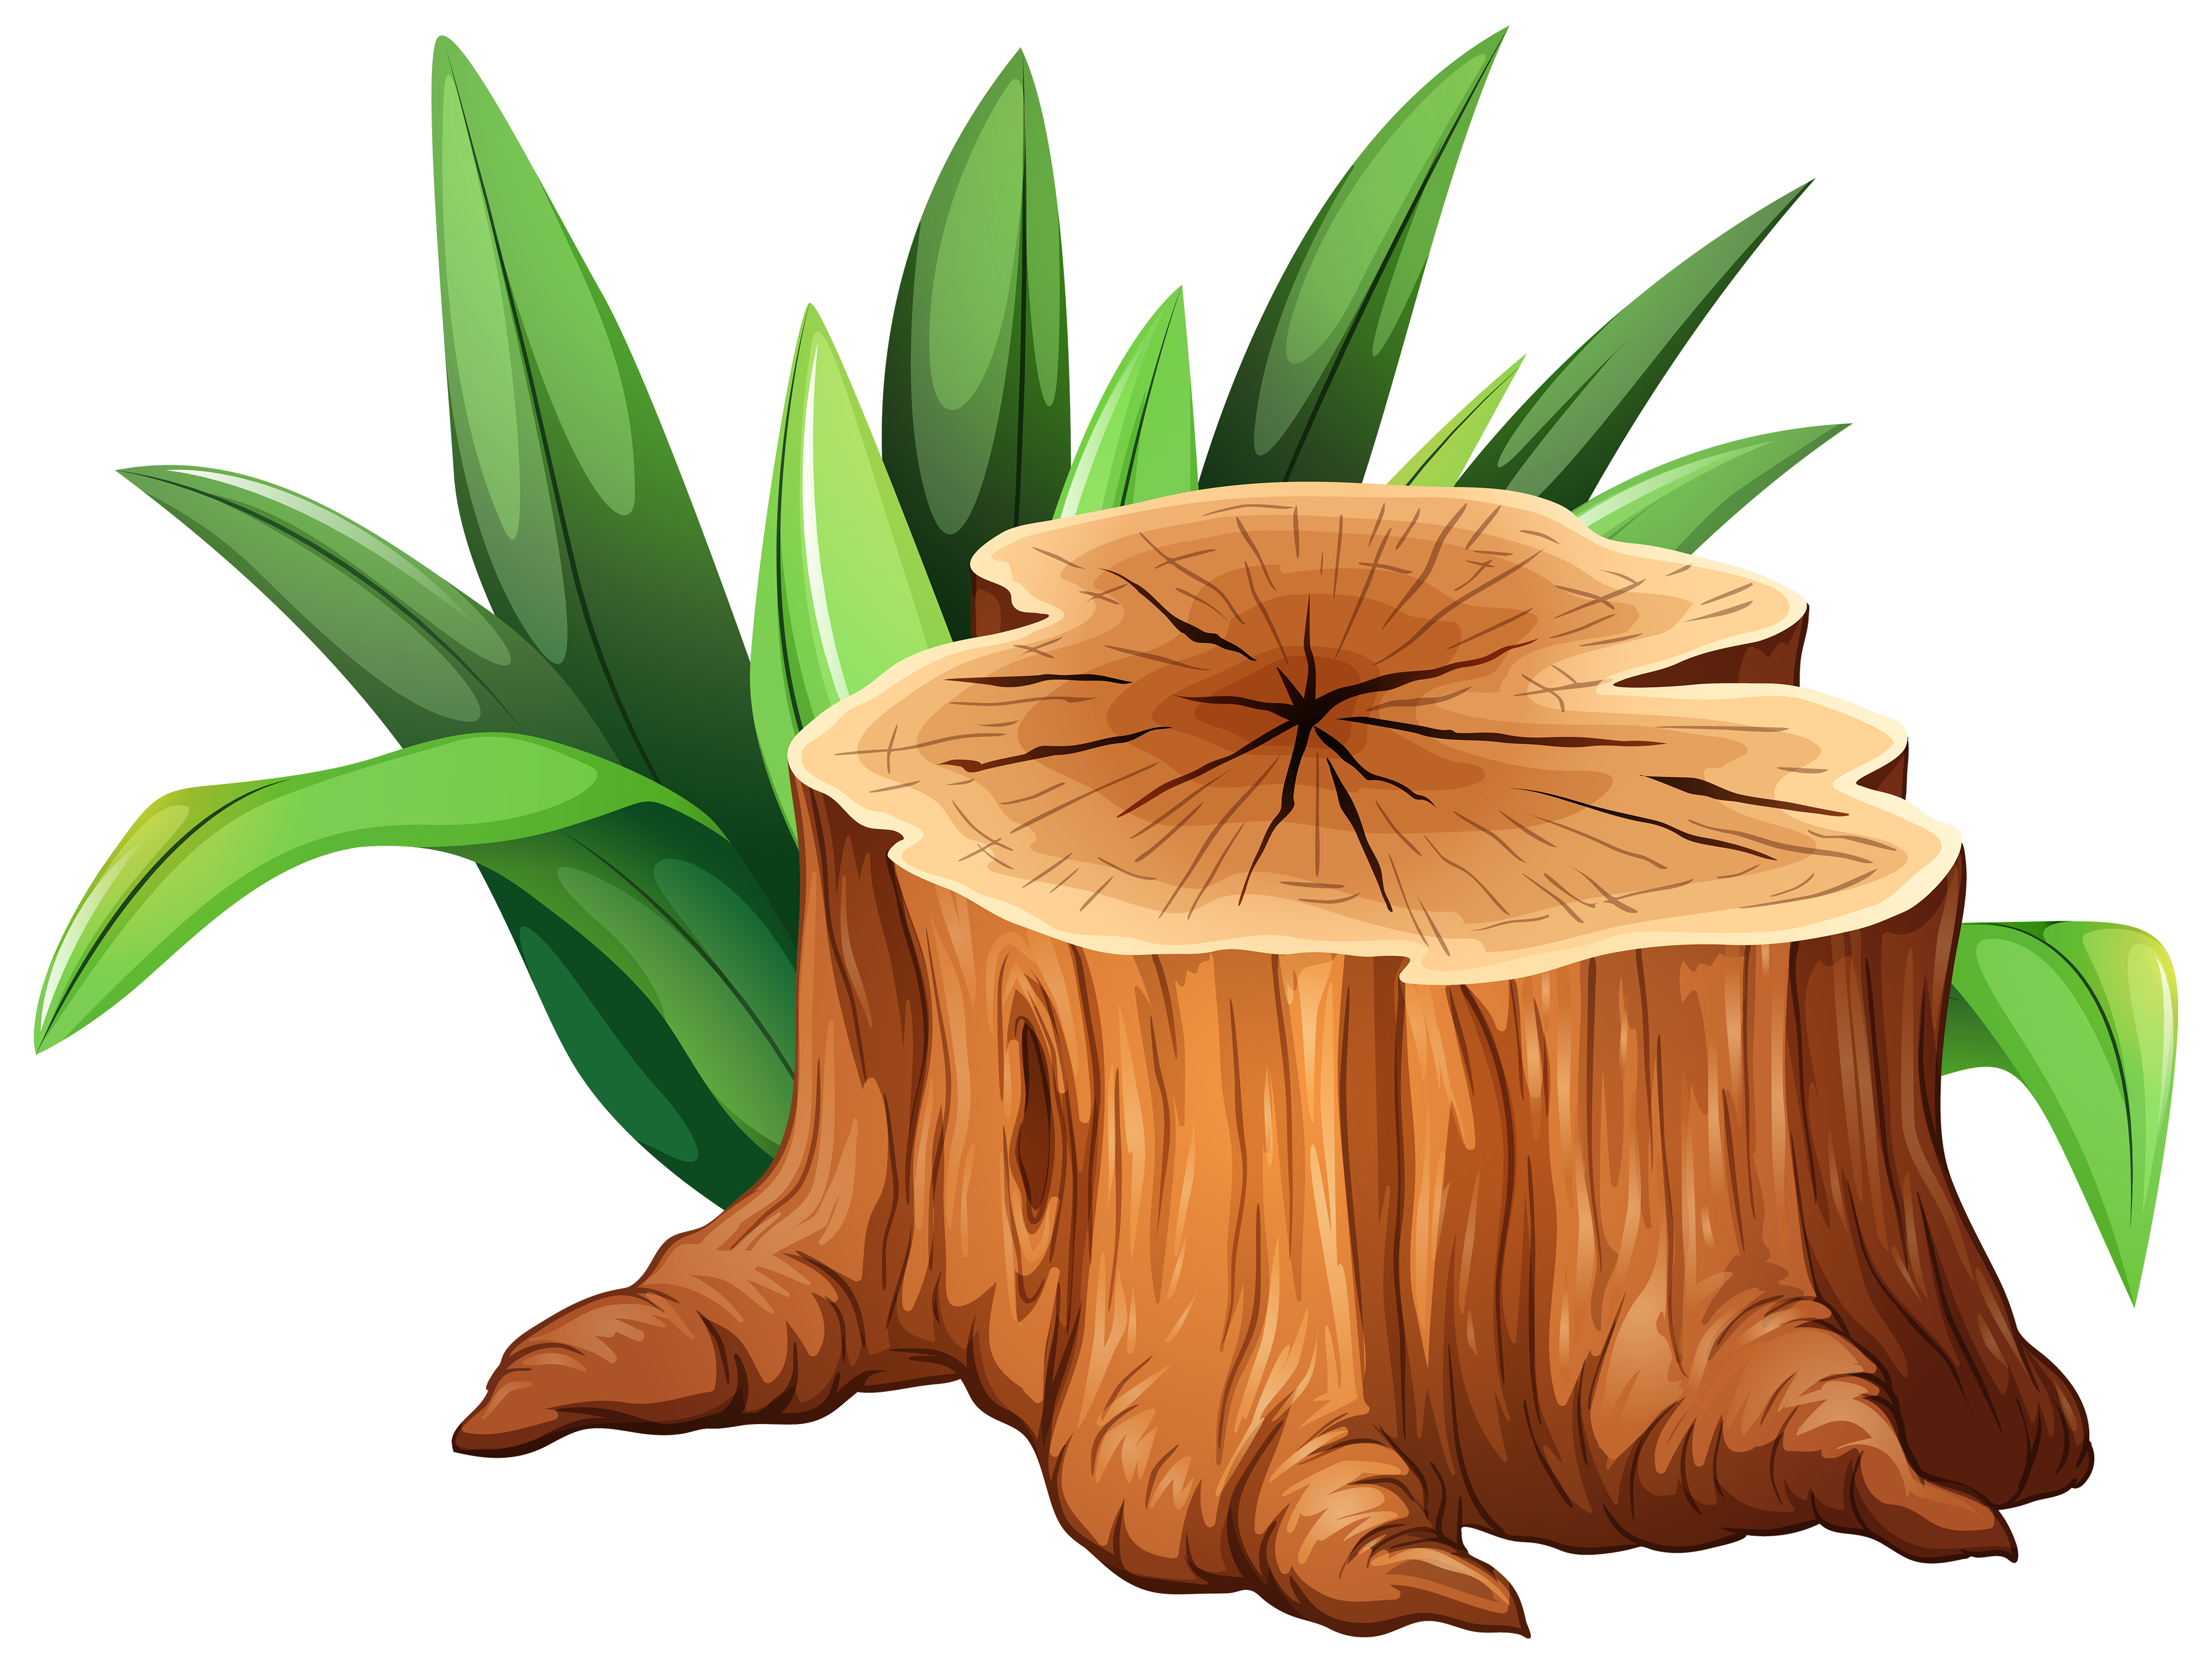 Tree trunk clipart free image royalty free 28+ Collection of Tree Trunk Clipart | High quality, free cliparts ... image royalty free